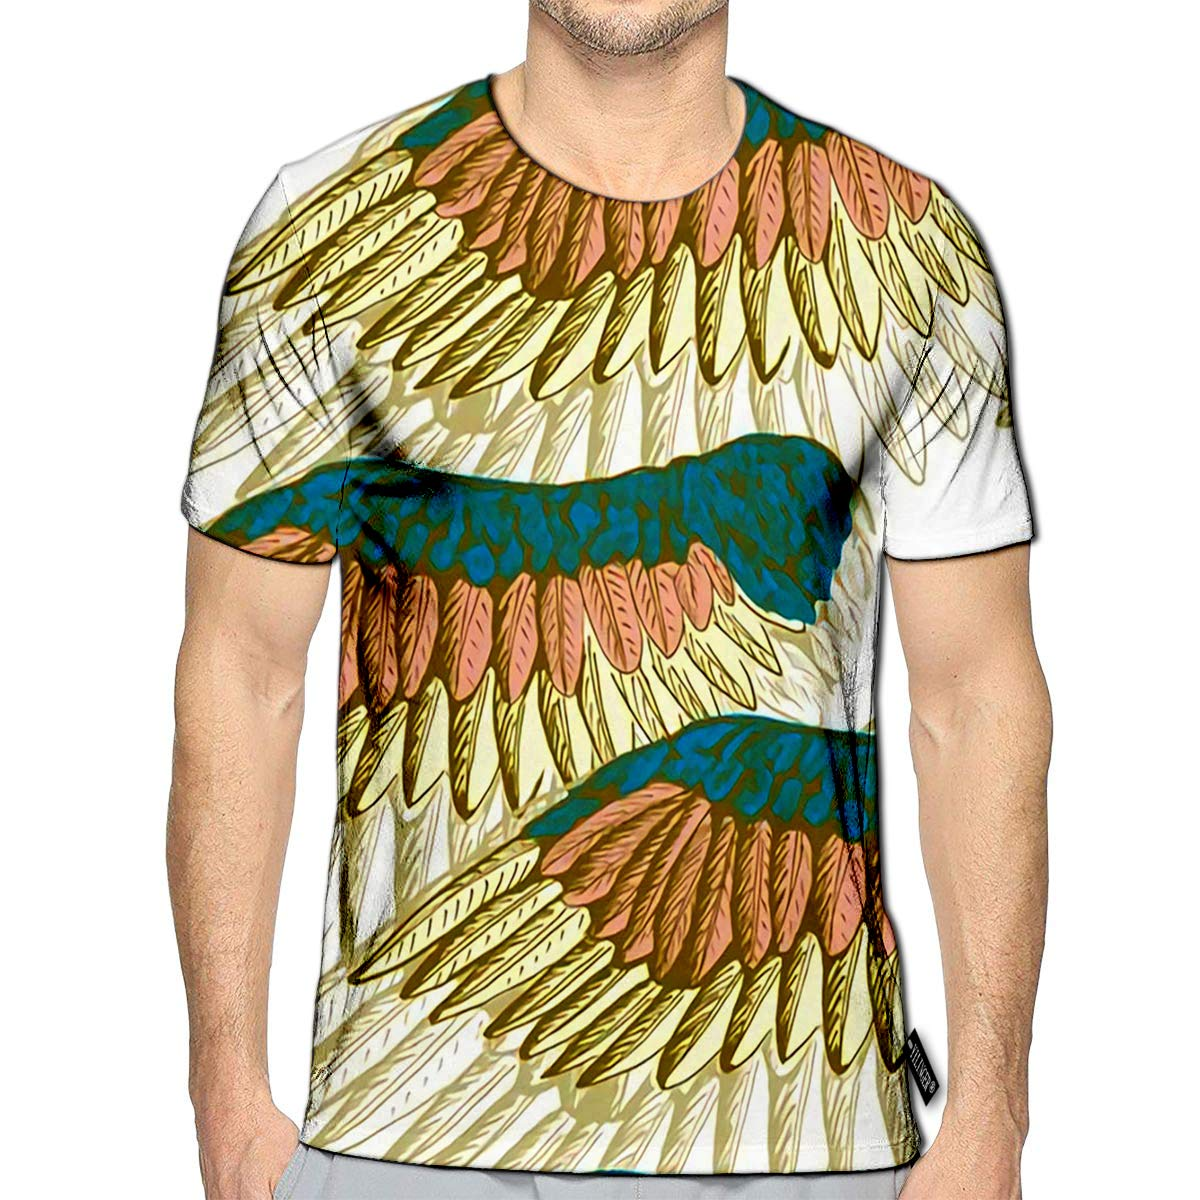 3D Printed T Shirts Zebra Animal Casual Mens Hipster Top Tees